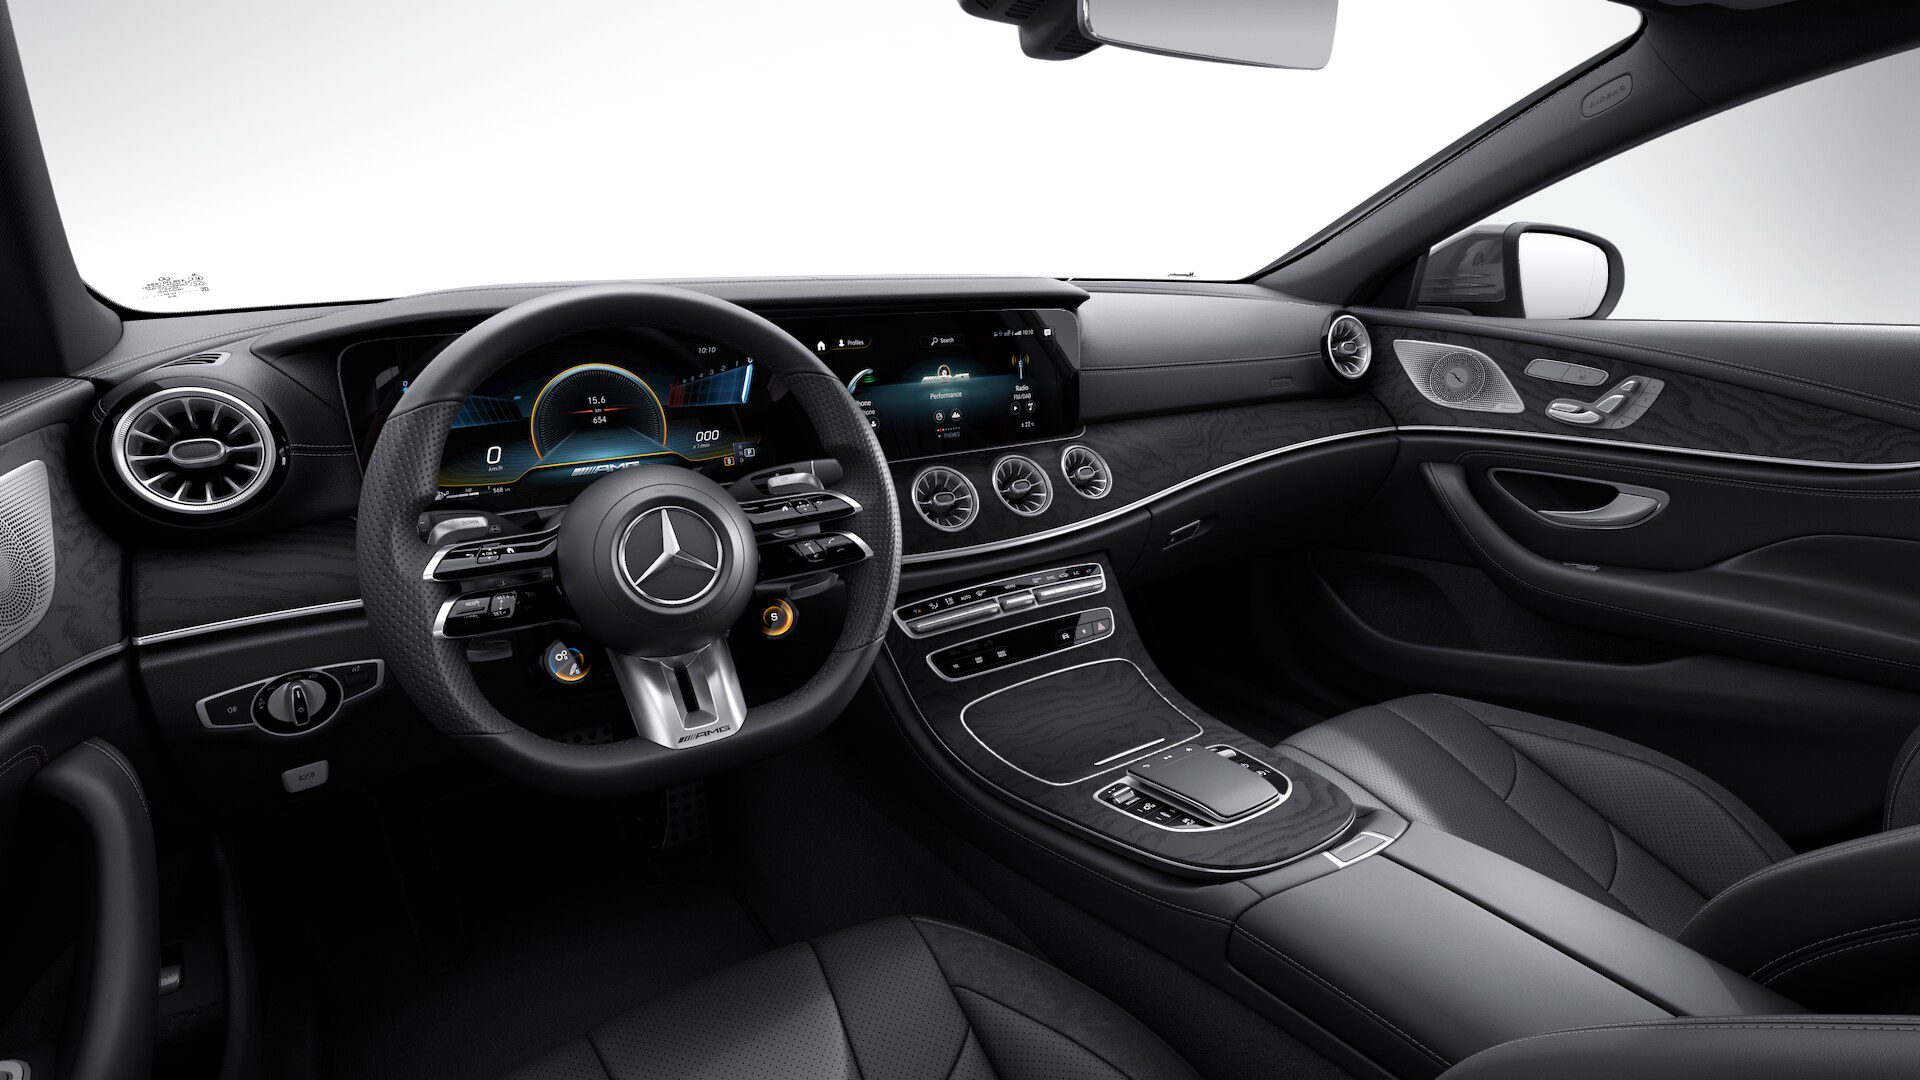 Interior of the Mercedes-AMG CLS53 4MATIC+